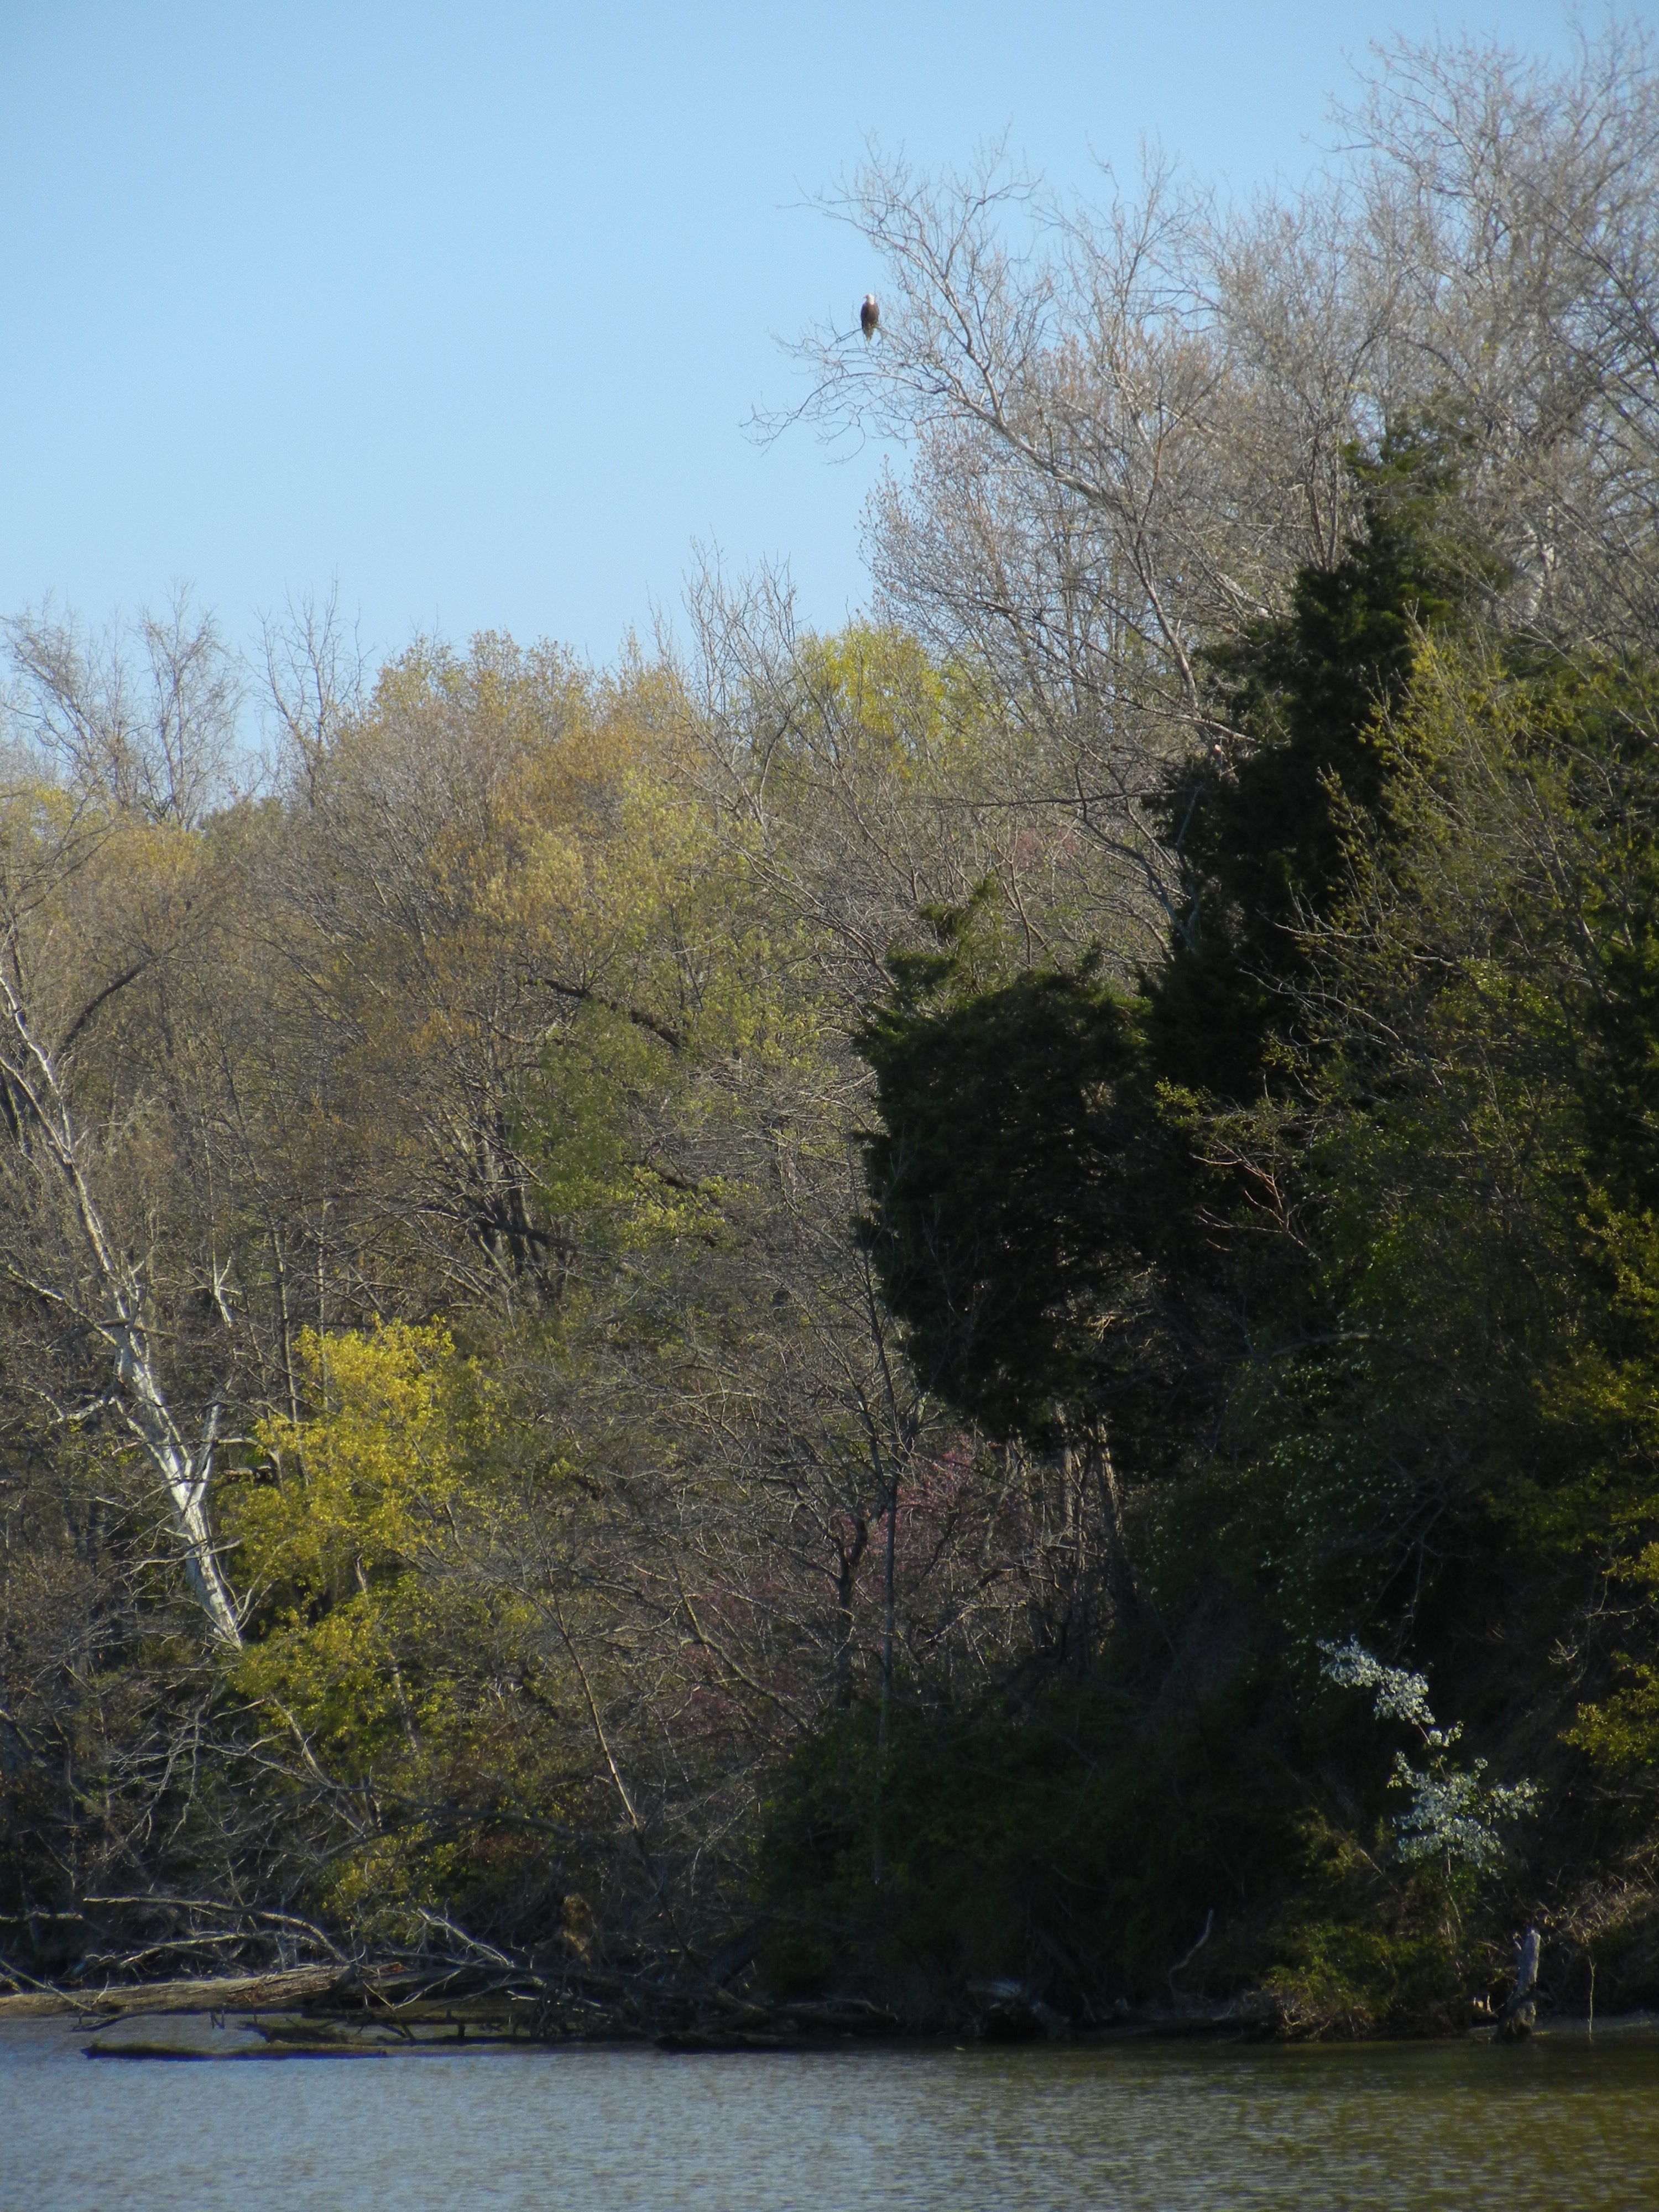 Bald eagle in the treetop